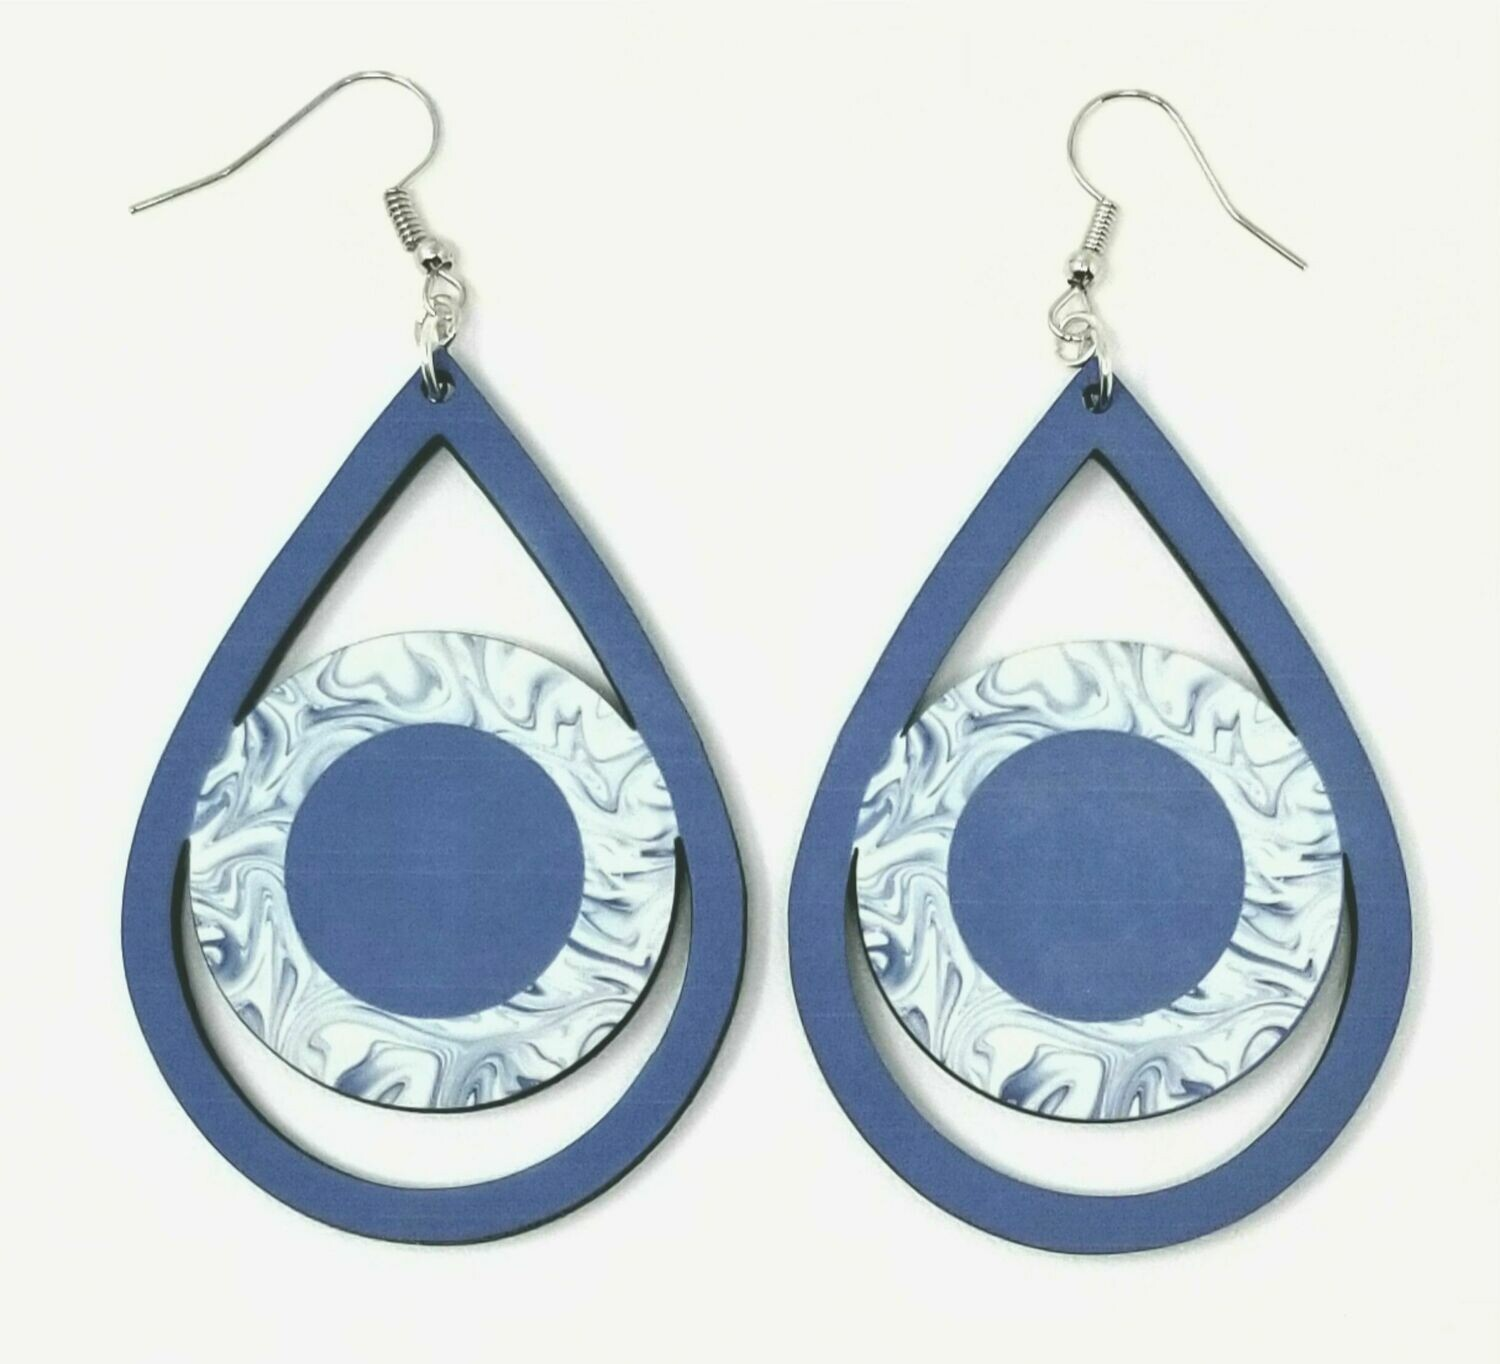 Blue Teardrop Earrings with Circle Center